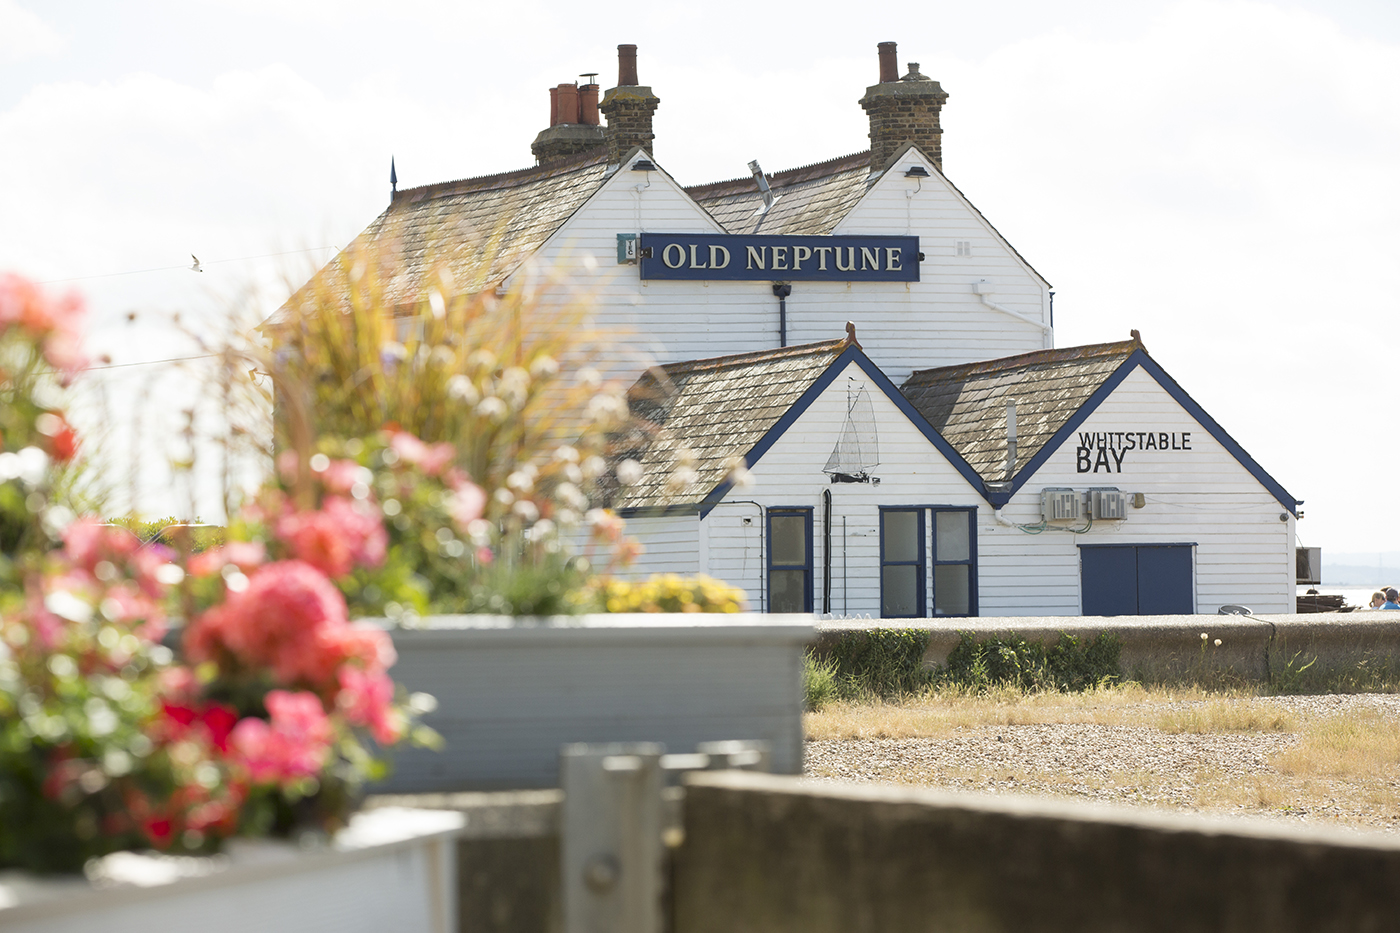 Whitstable pub